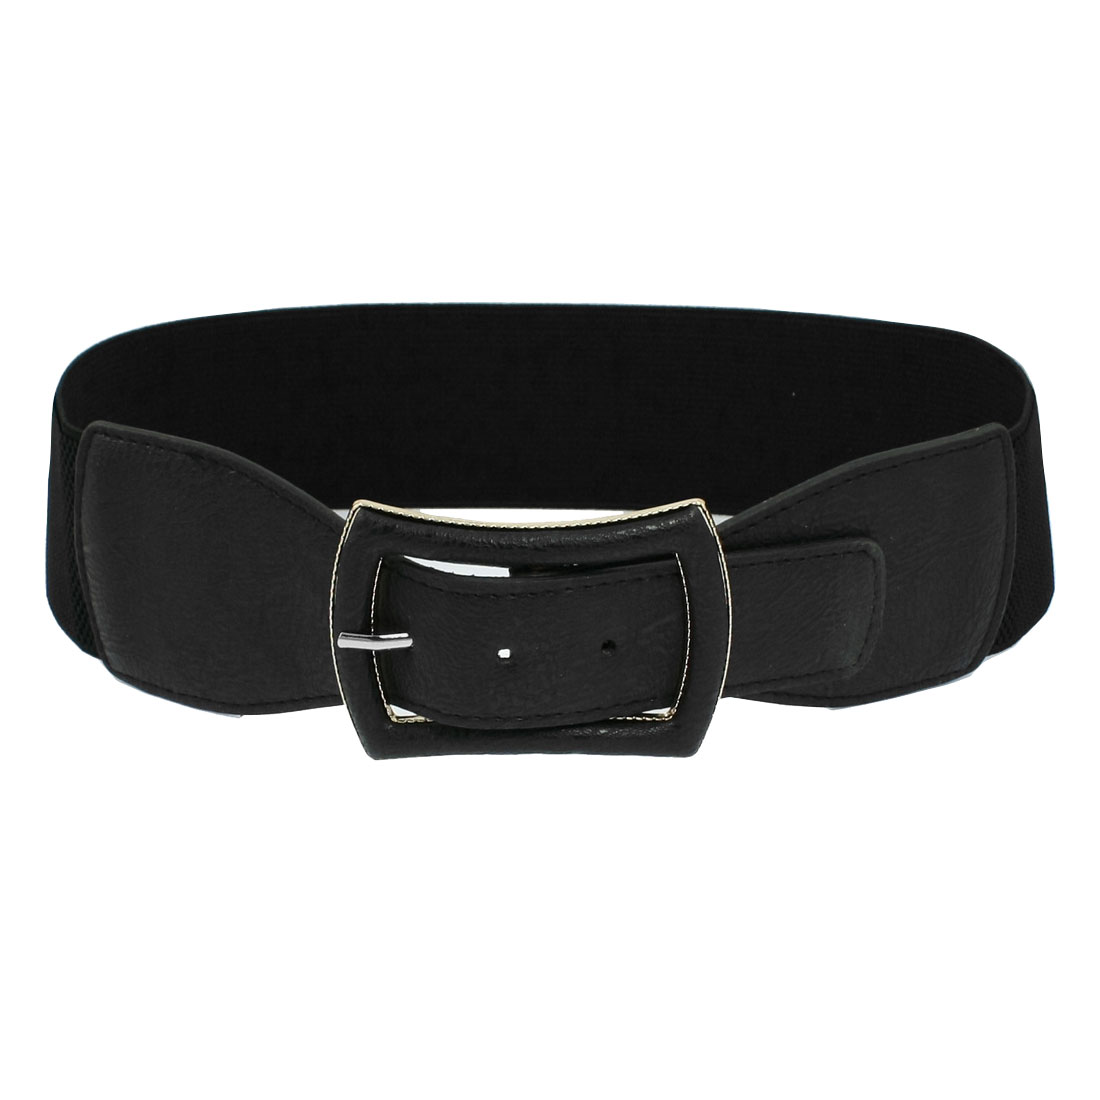 Woman-Single-Pin-Buckle-Stretchy-Cinch-Waist-Belt-Black-Actxc